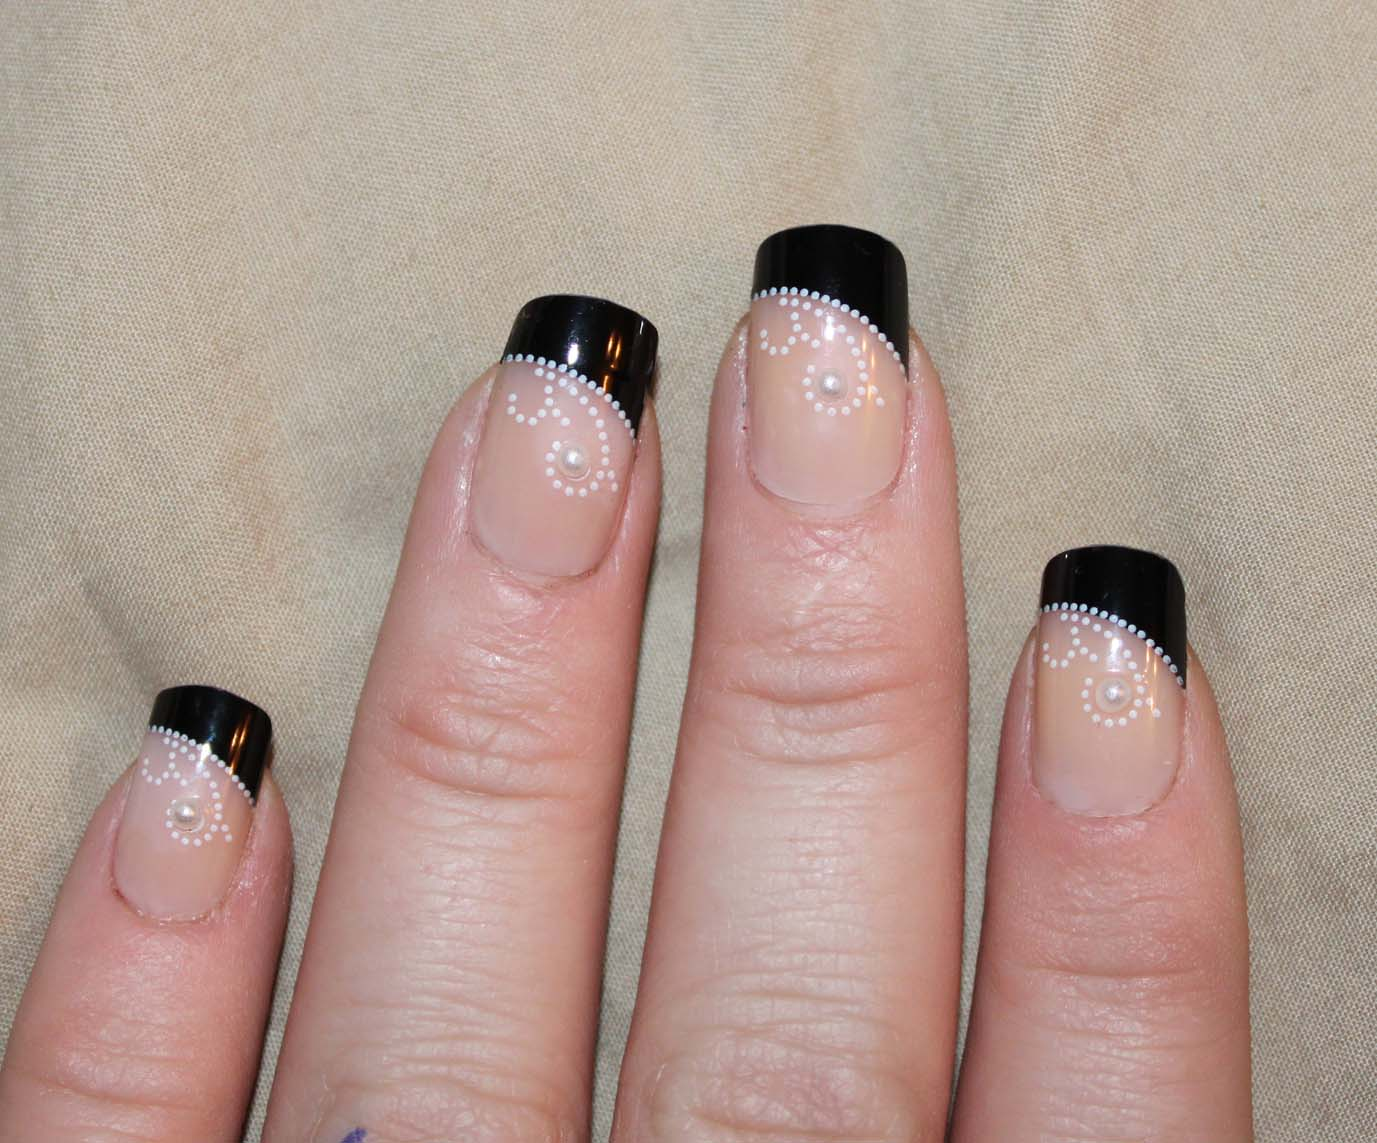 Fake Nails From Claire's